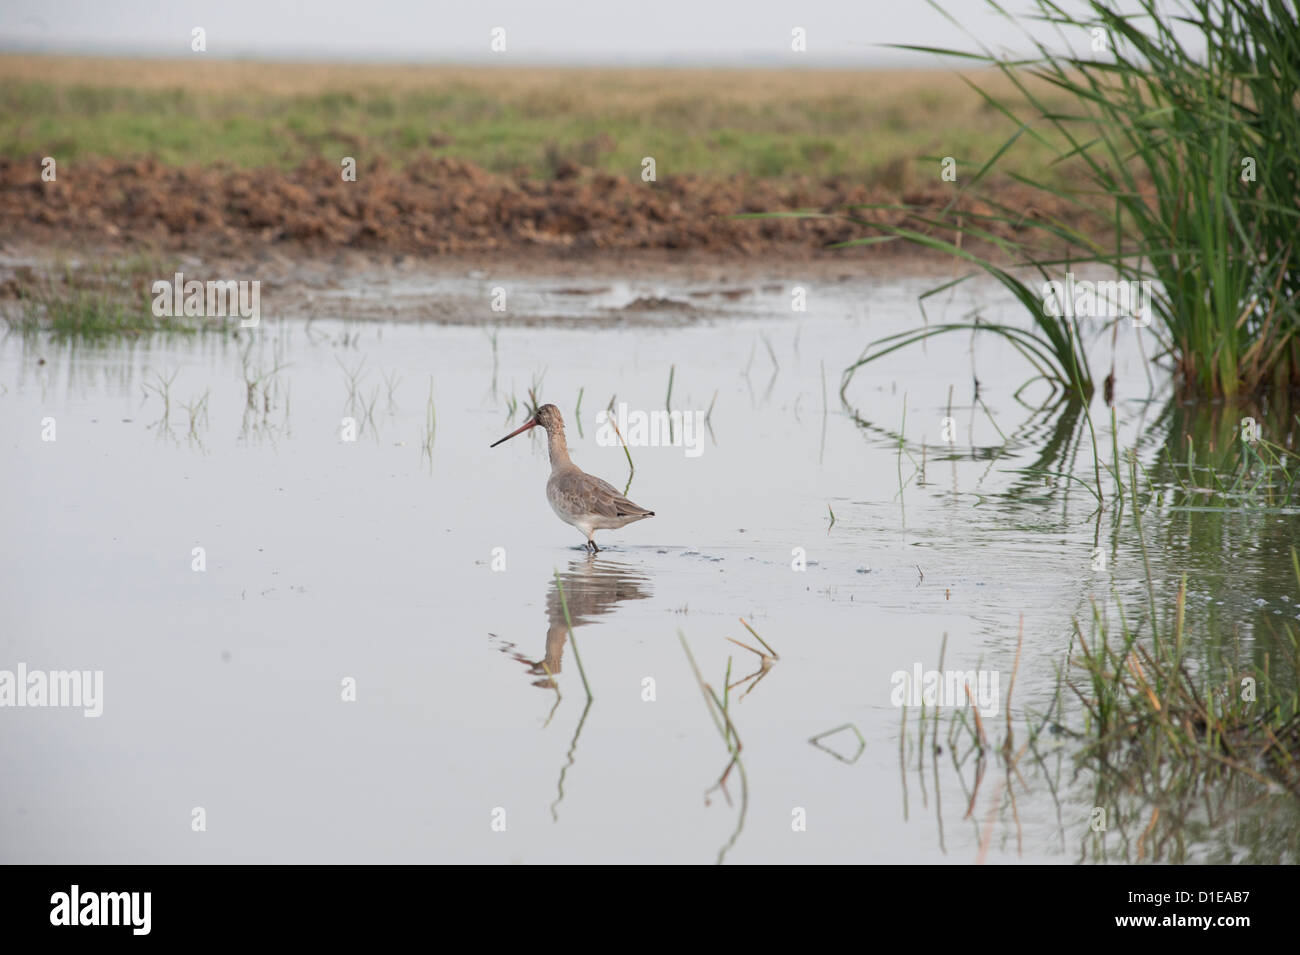 Marsh sandpiper wading in the shallow wetland waters at the edge of Chilika Lake, Orissa, India, Asia - Stock Image